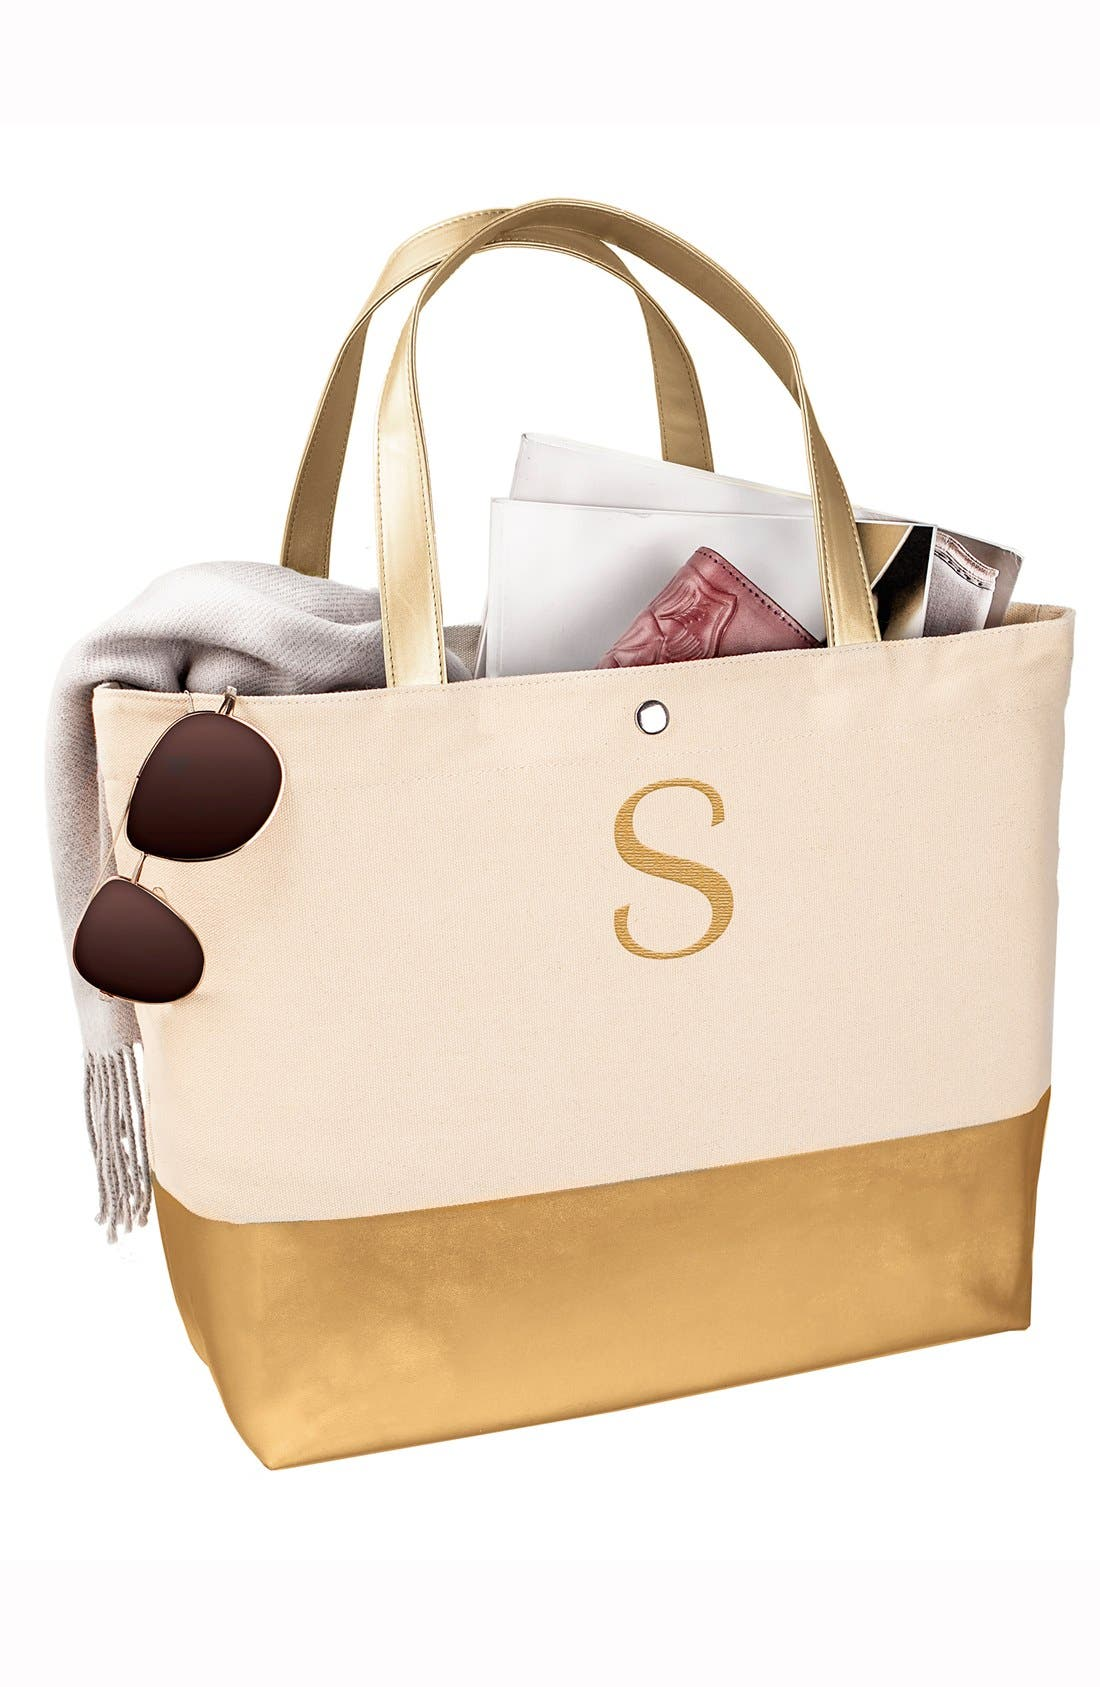 Monogram Canvas Tote,                             Alternate thumbnail 5, color,                             GOLD